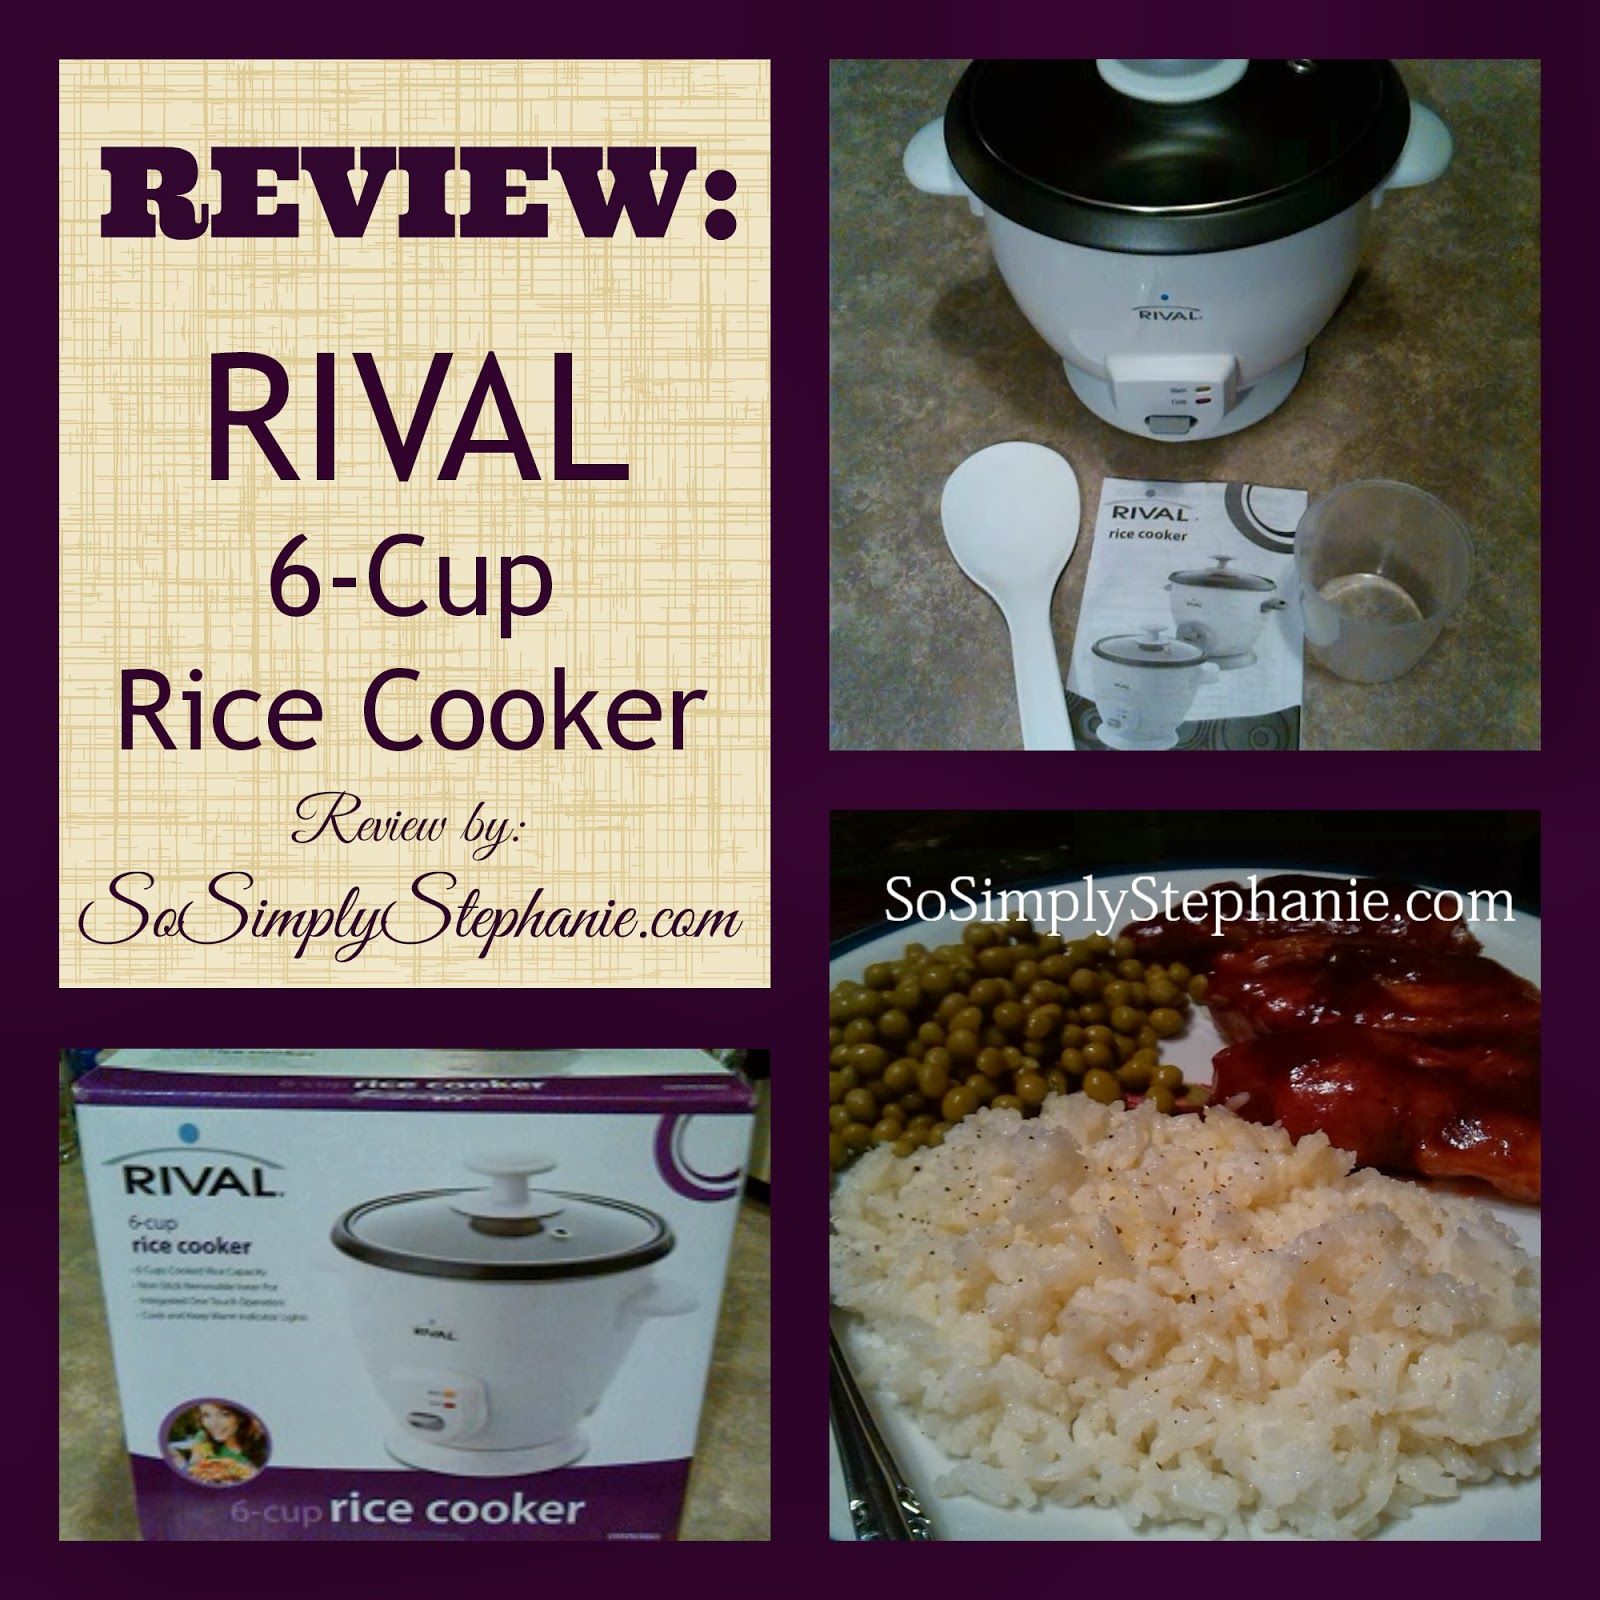 Rival 6-Cup Rice Cooker Review